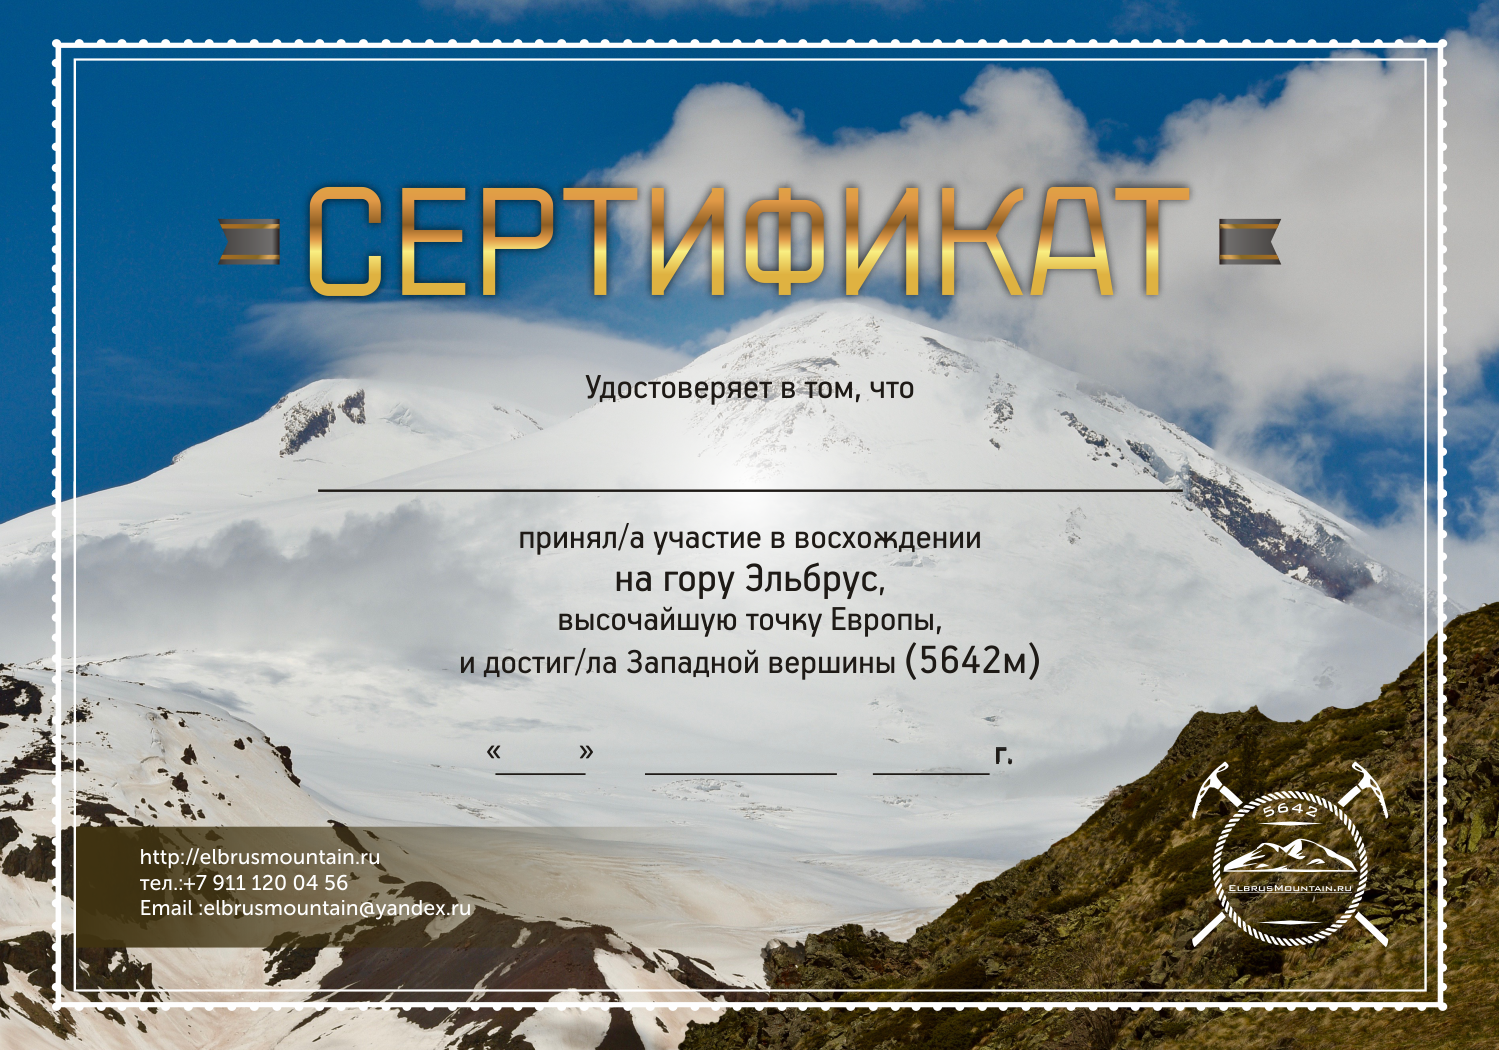 Сертификат ElbrusMountain team